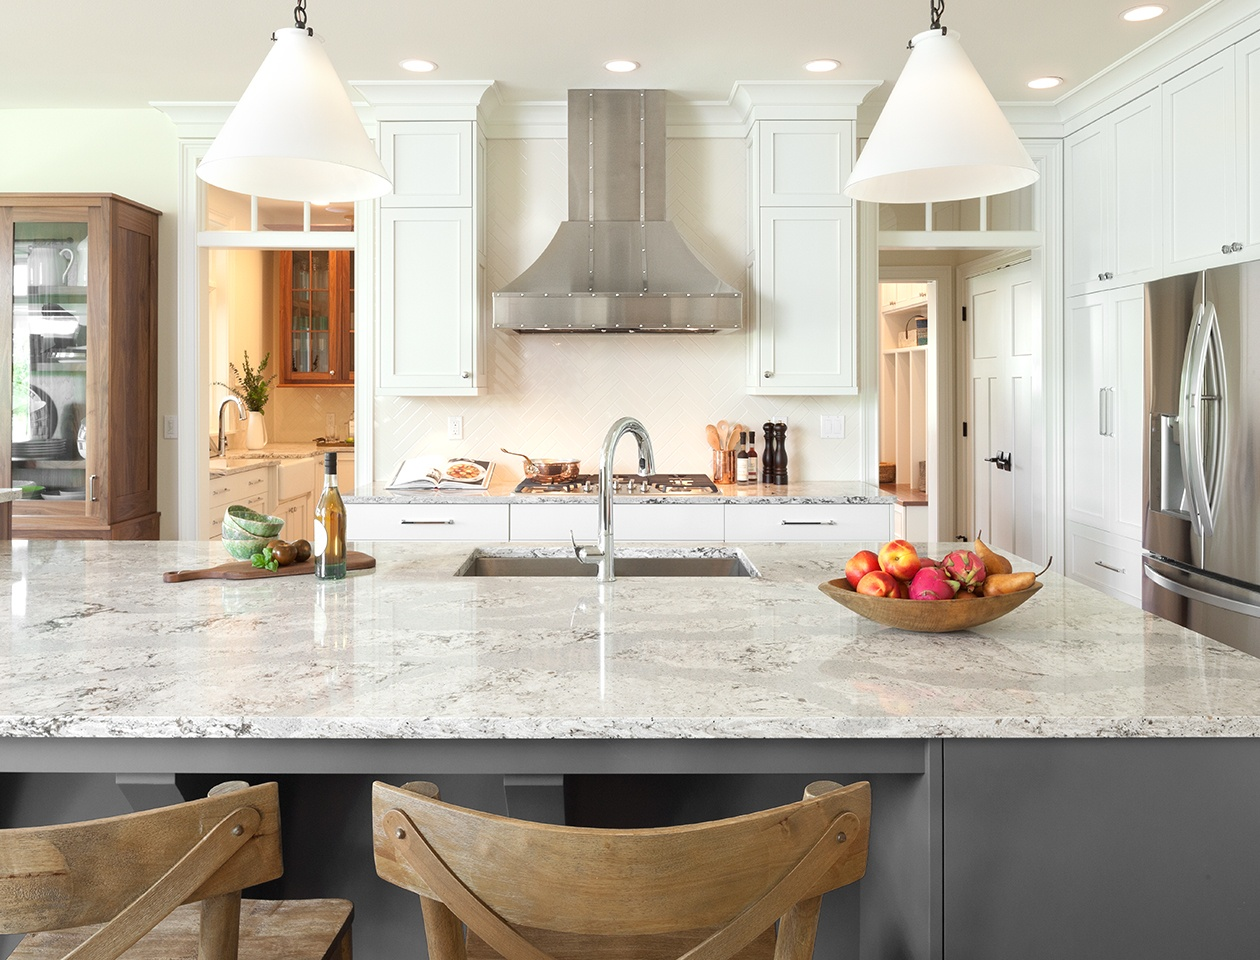 Marvelous The Different Types Of Quartz Countertops And How To Care For Quartz  Countertops